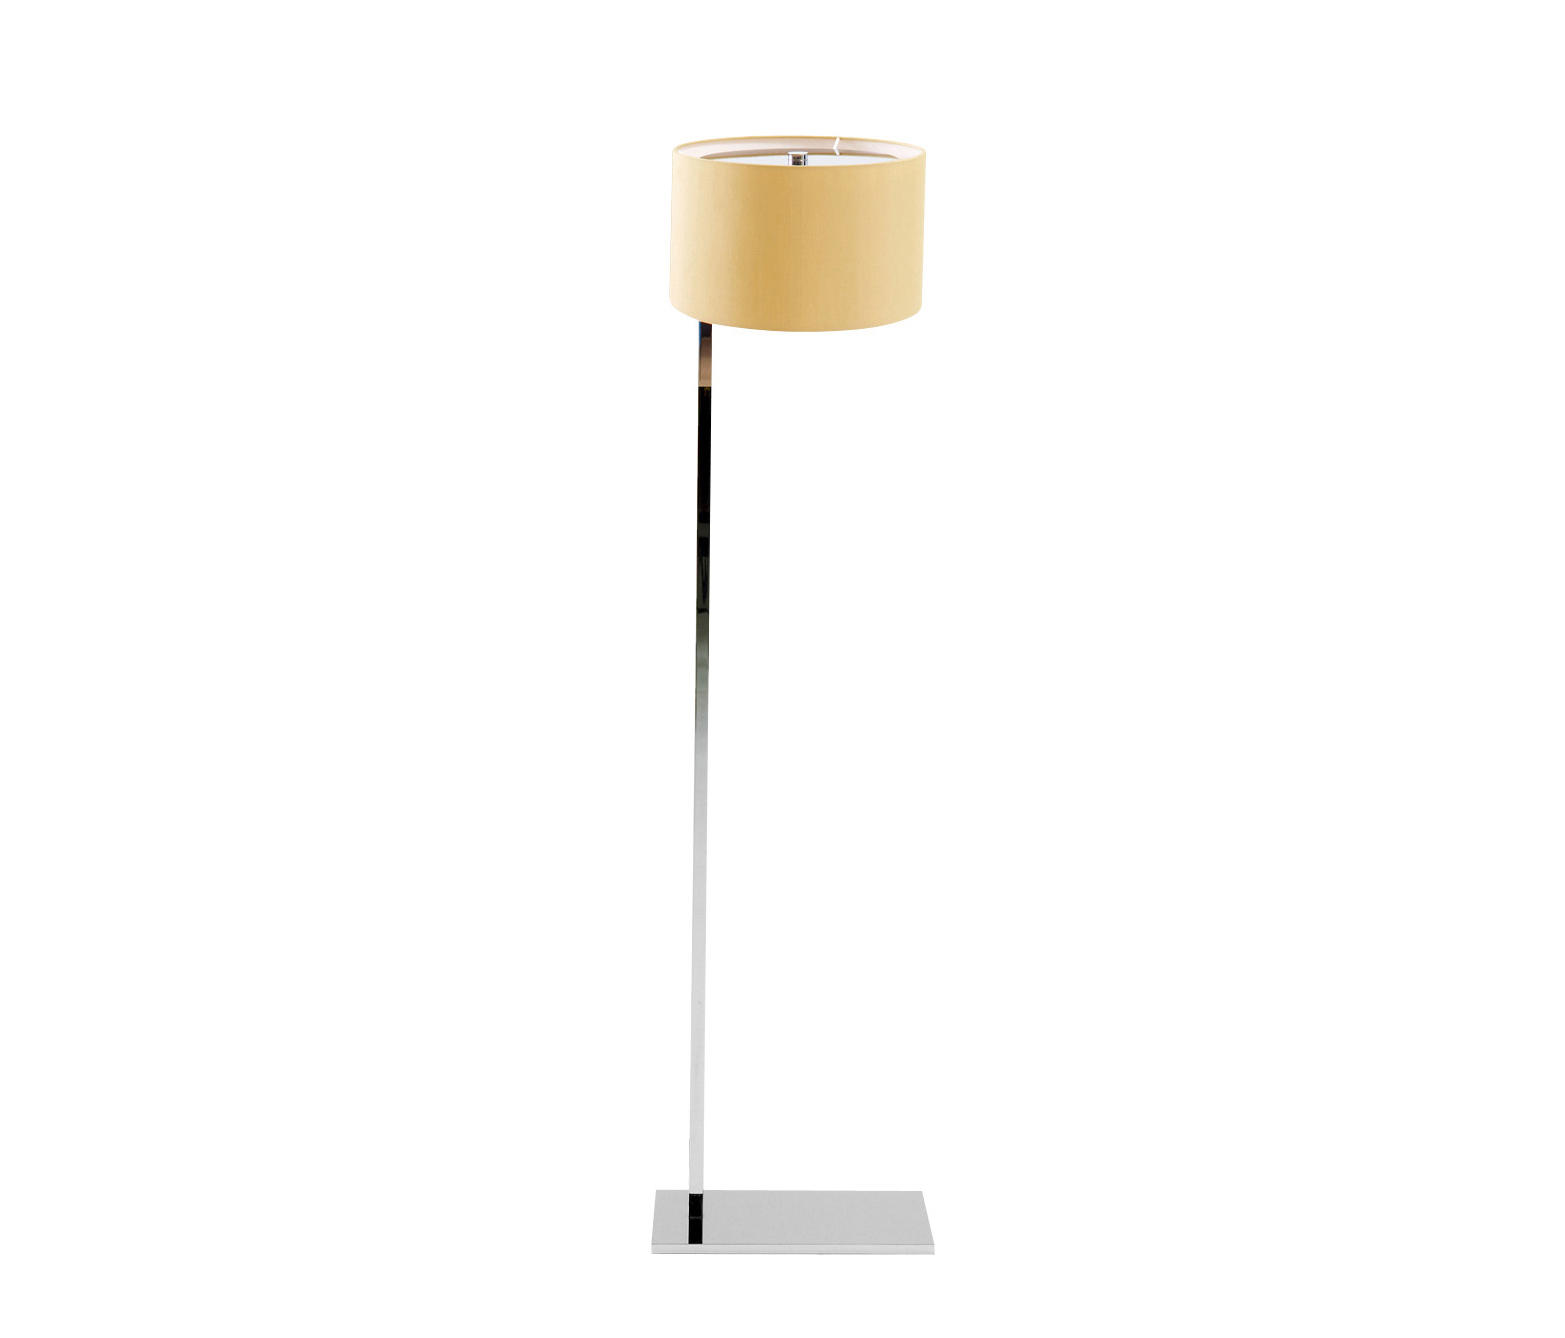 Mono floor lamp round general lighting from christine krncke mono floor lamp round by christine krncke general lighting aloadofball Gallery